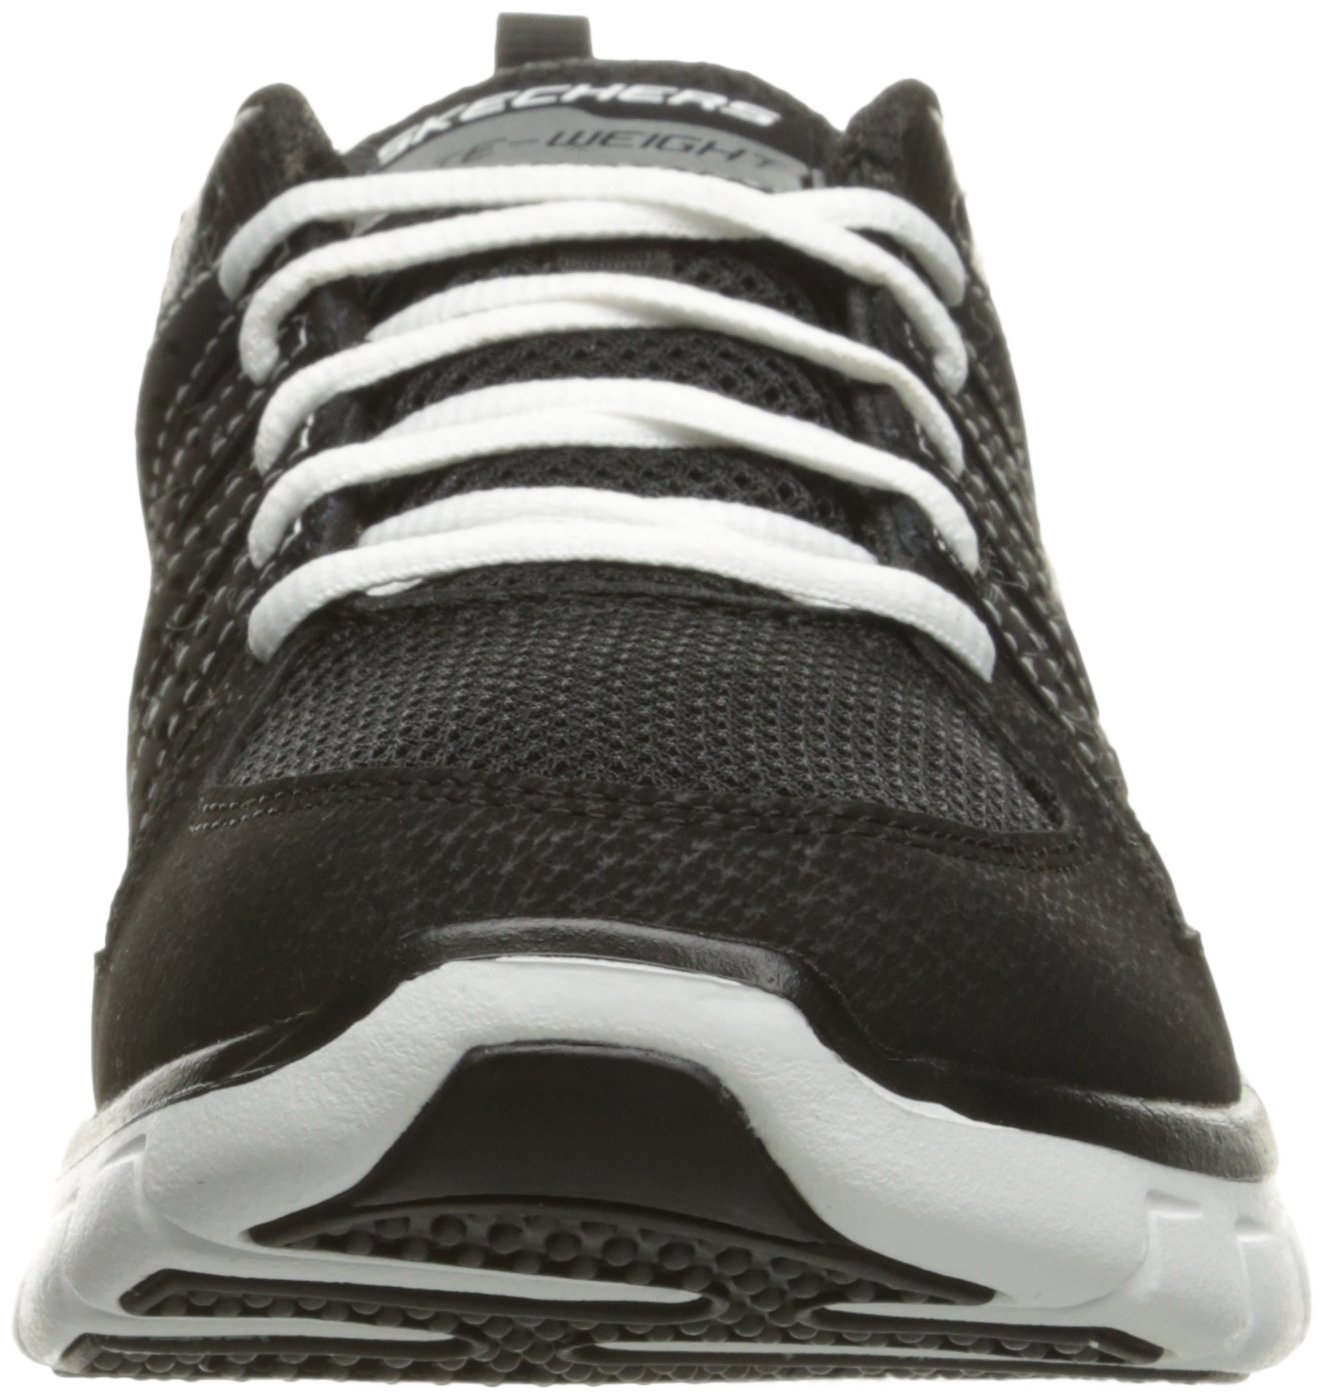 Skechers Sport Women's Synergy Look Book Fashion Sneaker B01HH0VQ1C 10 B(M) US|Black/White